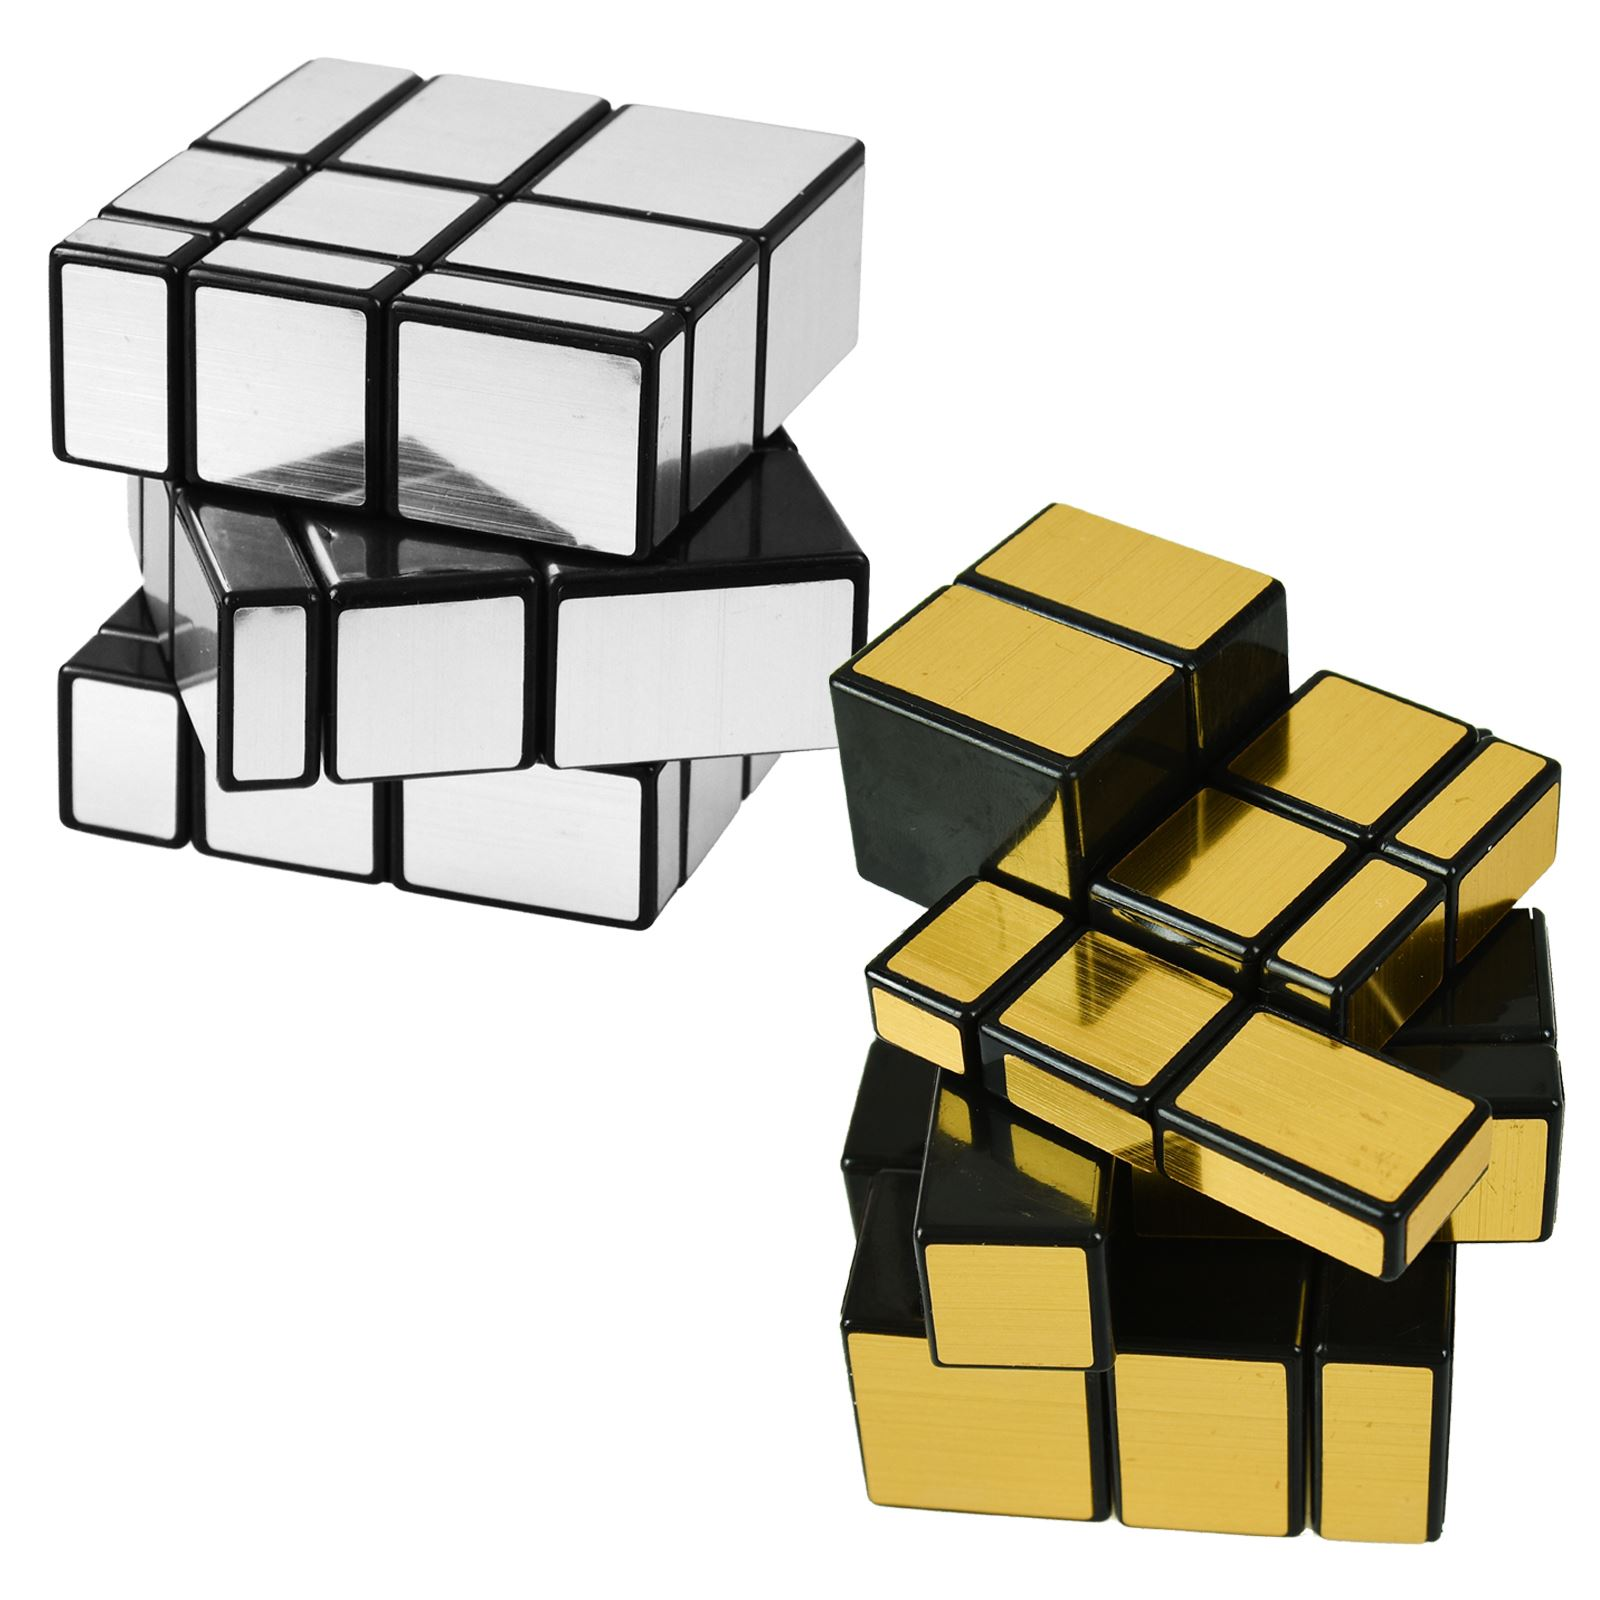 3x3-Miroir-Cube-Puzzle-Mind-Game-Brain-Teasers-Magic-scies-sauteuses-enfants-jouet-adulte-cadeau miniature 13